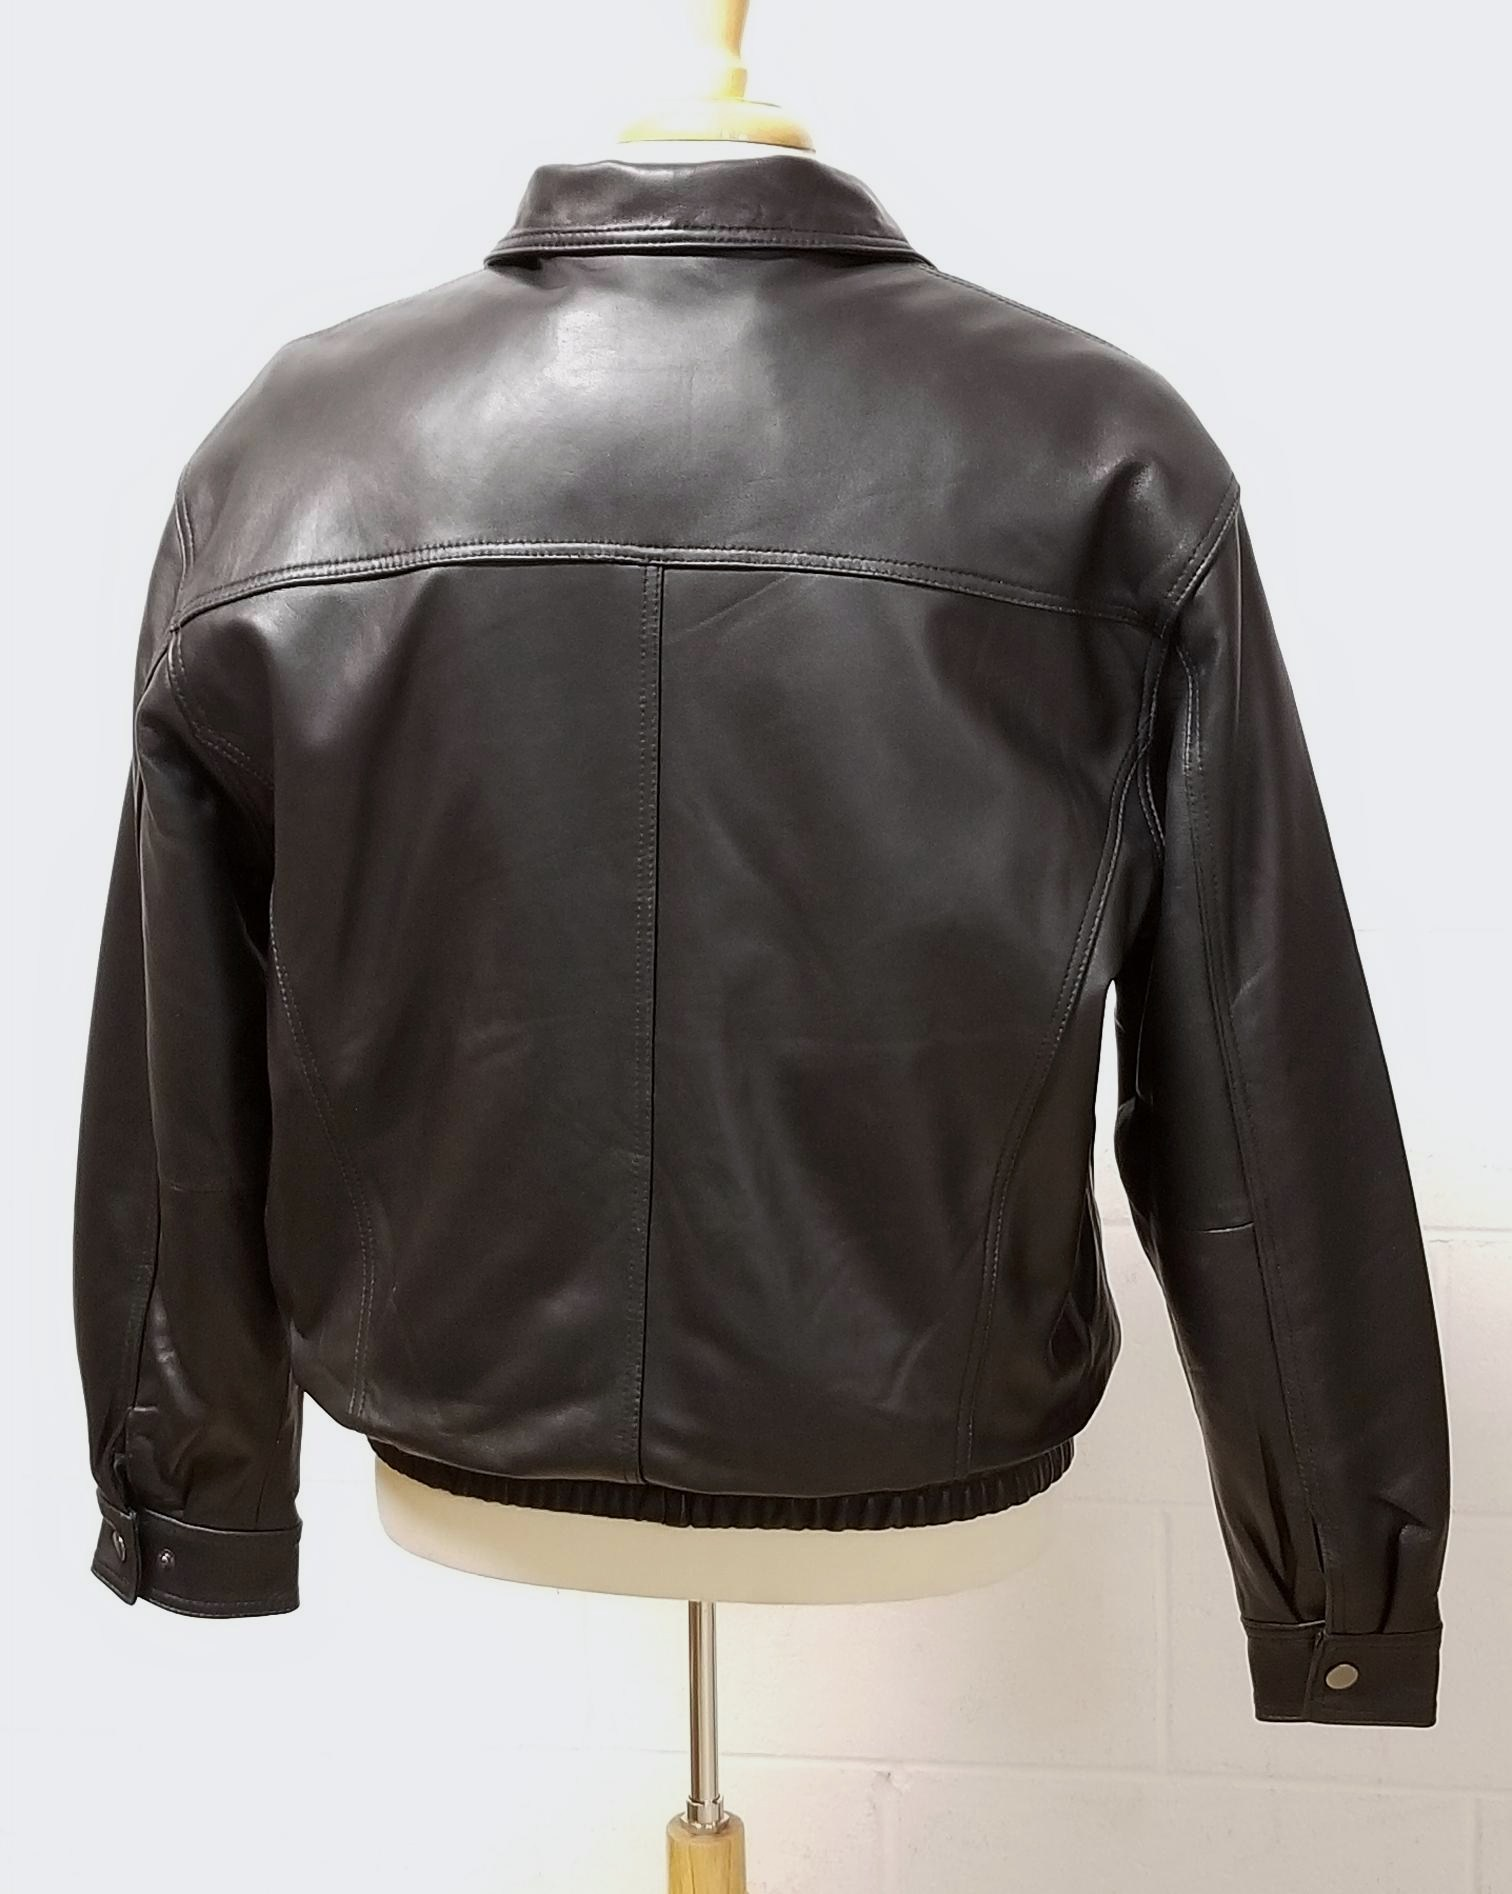 Men's Bomber Jacket Genuine Leather (Pig Nappa)